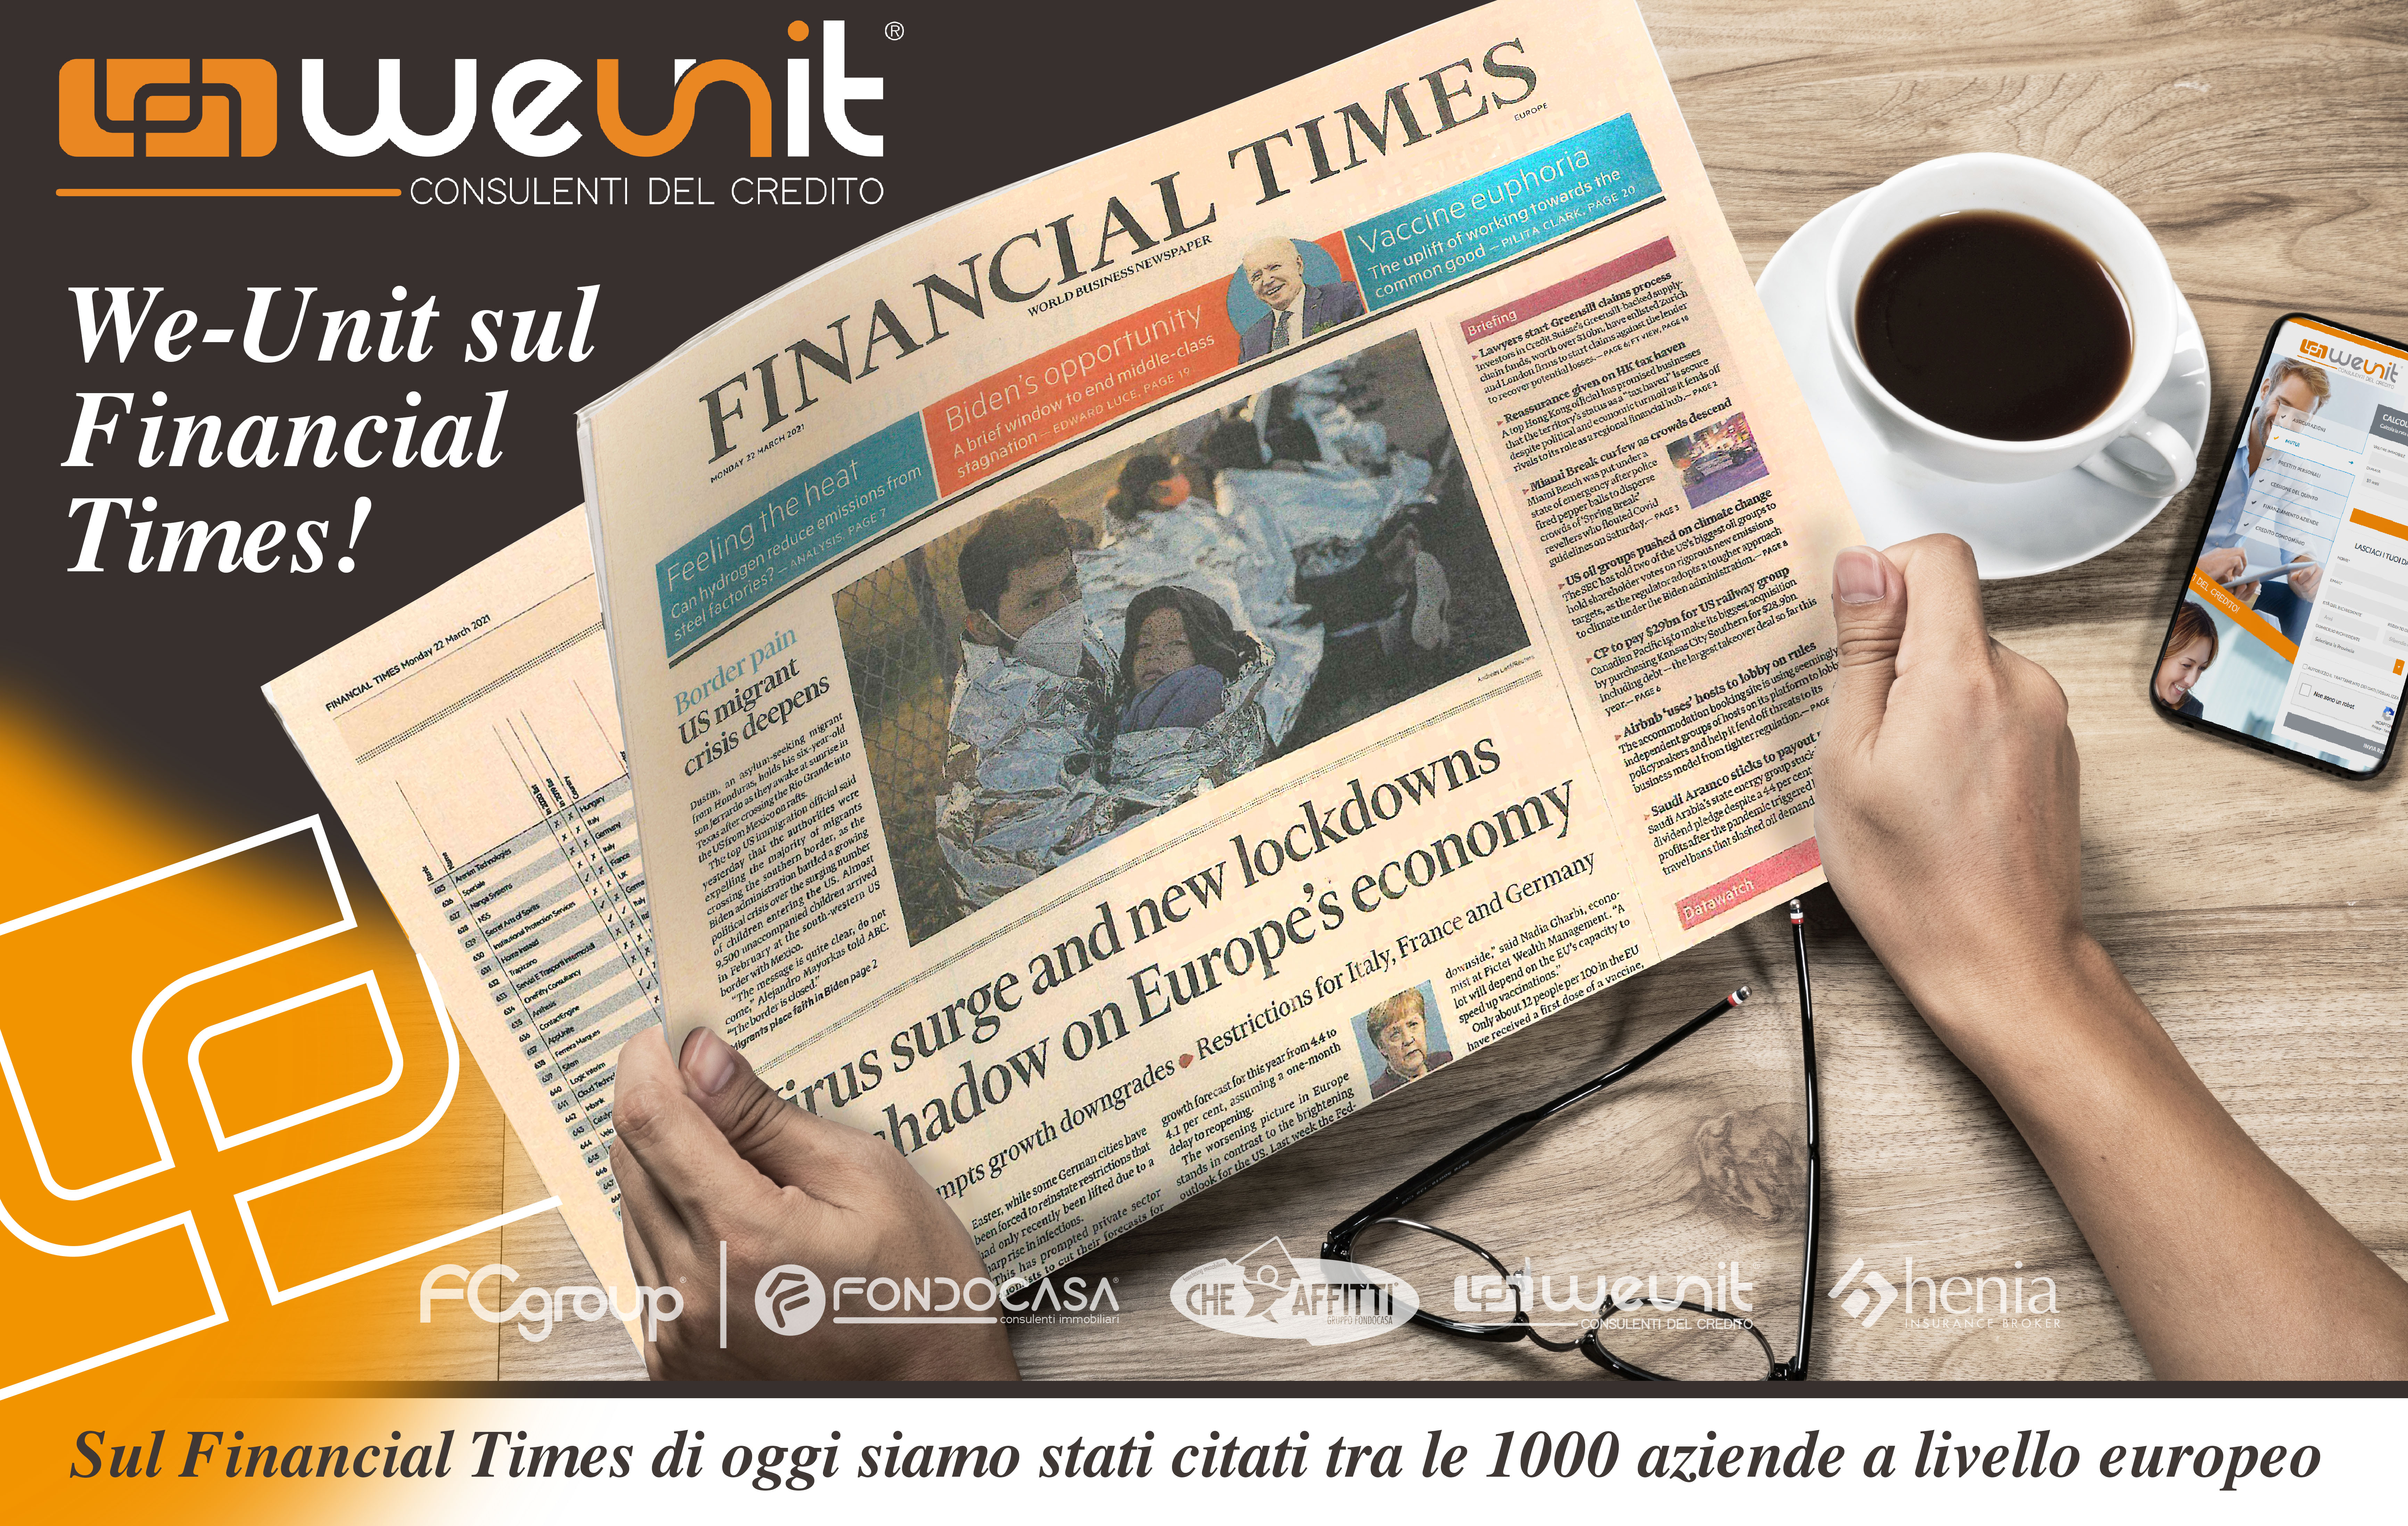 Weunit sul Financial Times